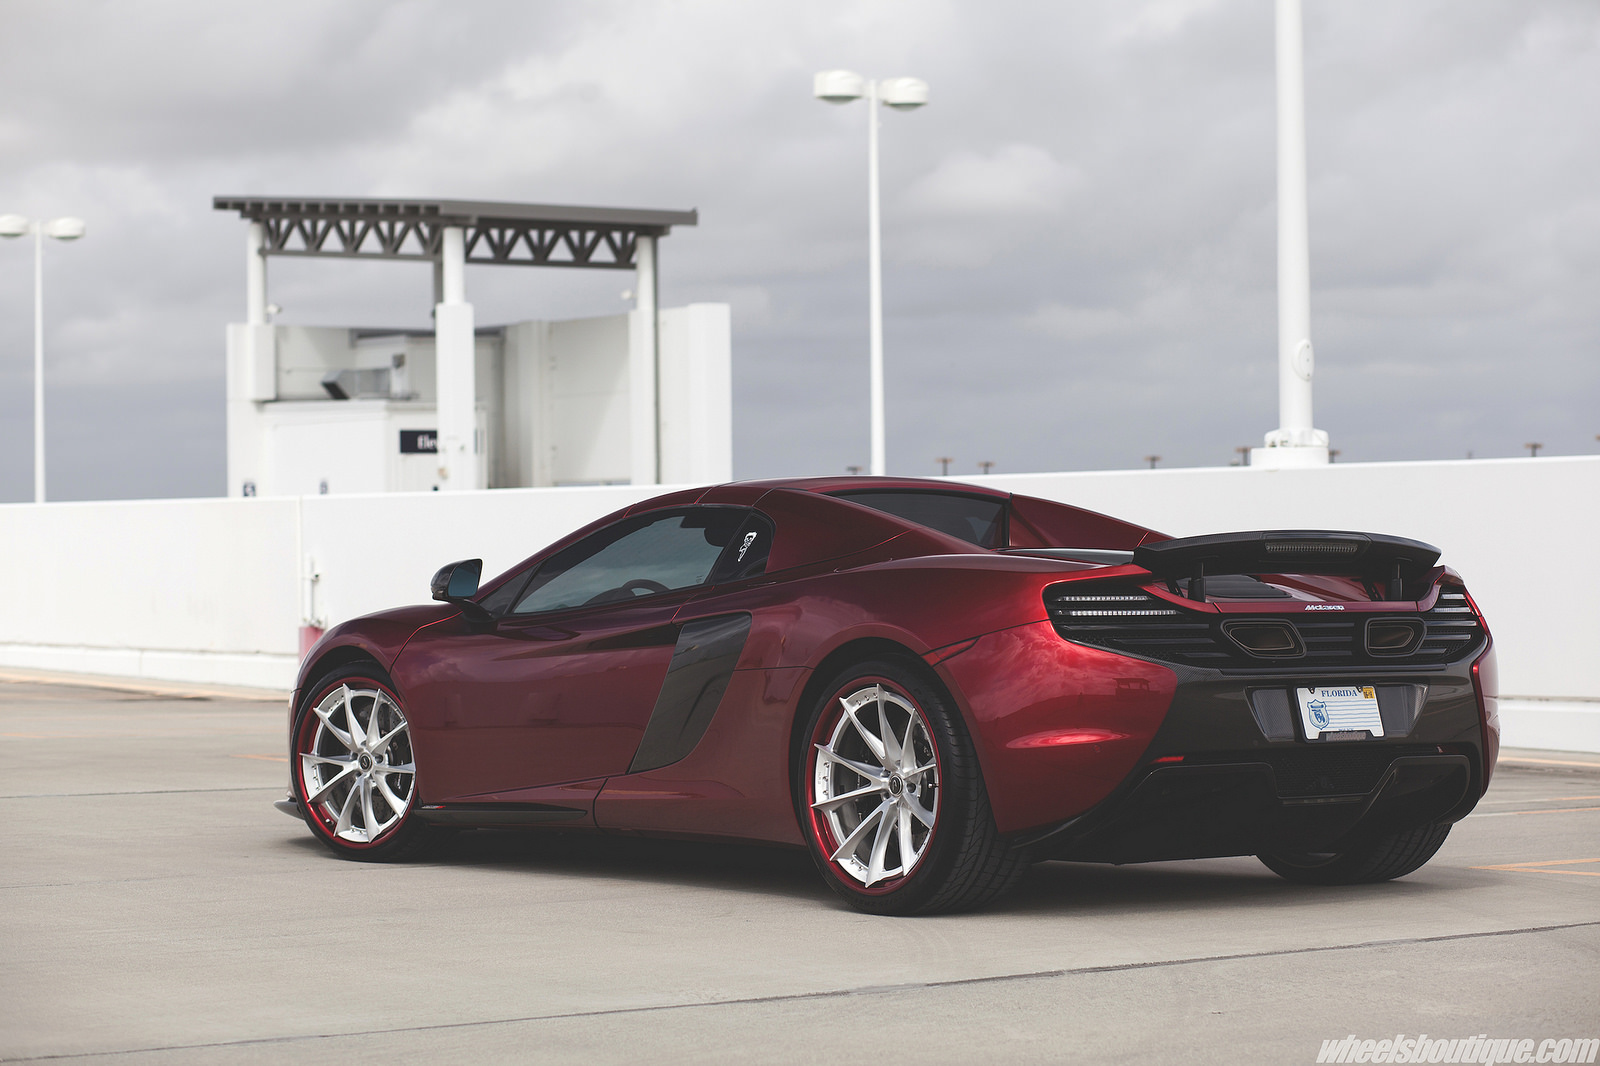 photo 2 McLaren 650S custom wheels HRE S204 20x9.0, ET , tire size 245/30 R20. 21x12.5 ET 325/25 R21